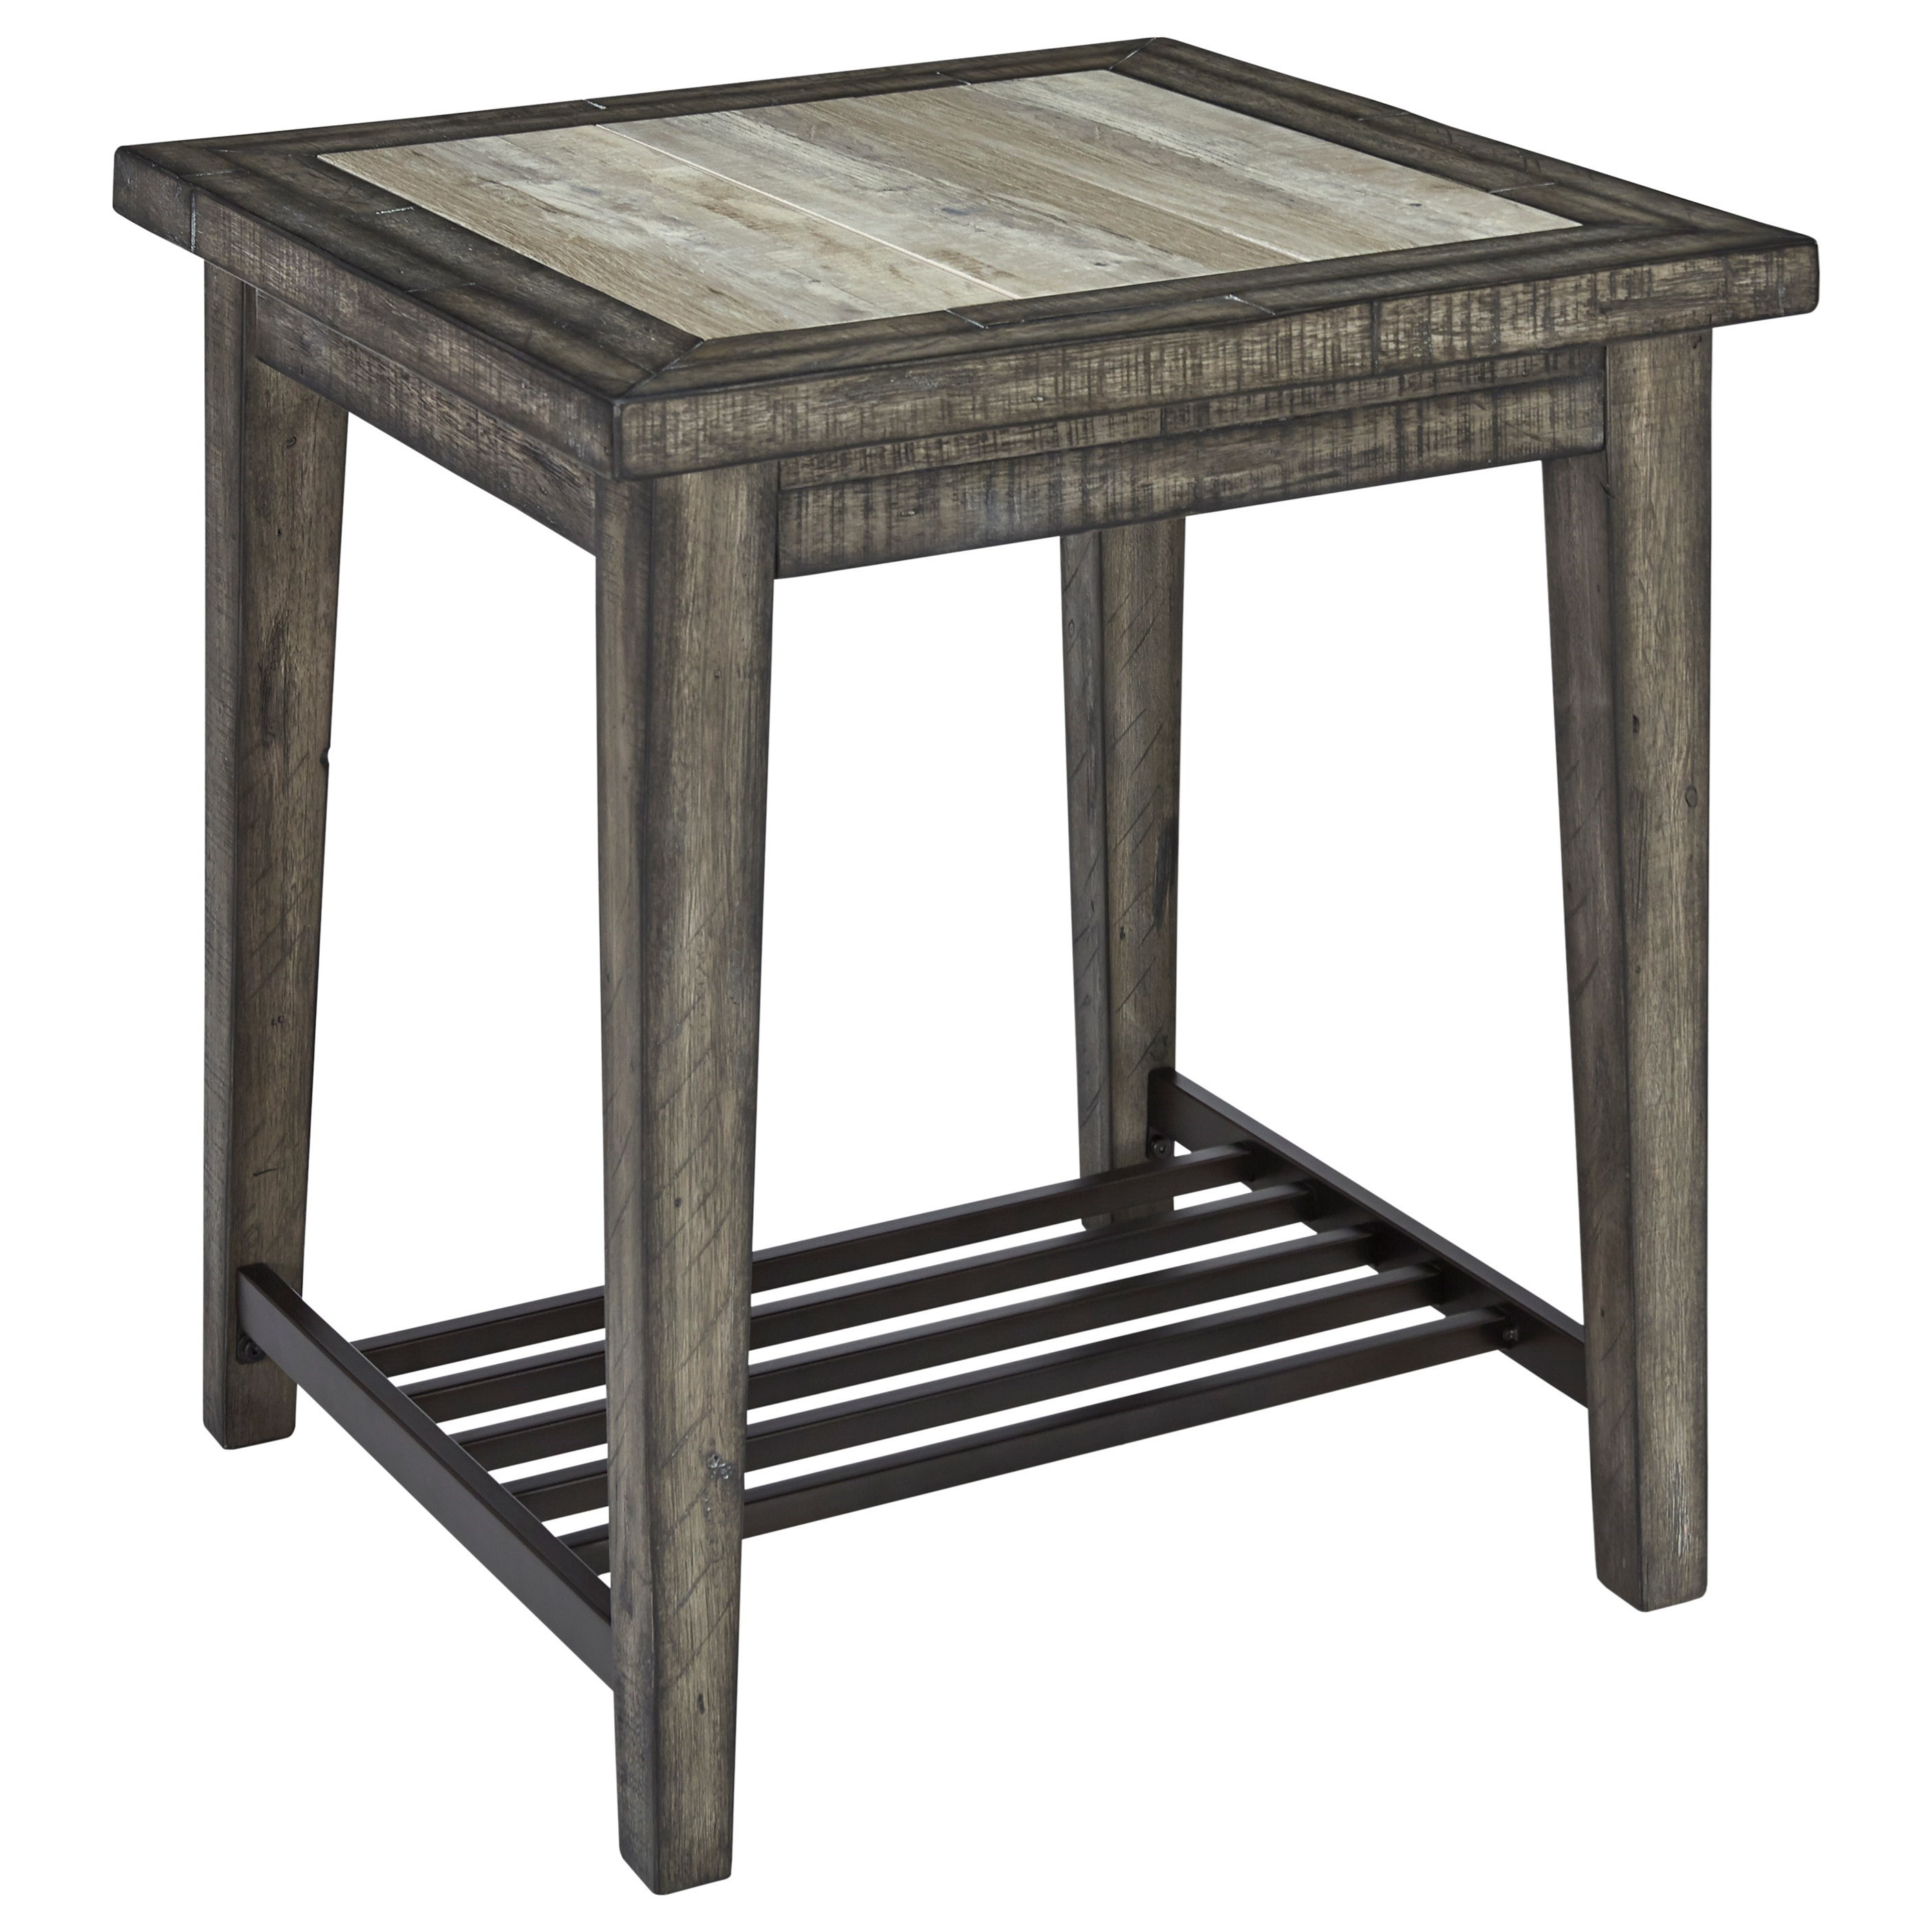 Signature Designs By Ashley Rollins Square End Table: Mavenry Rustic Square End Table With Ceramic Tile Top